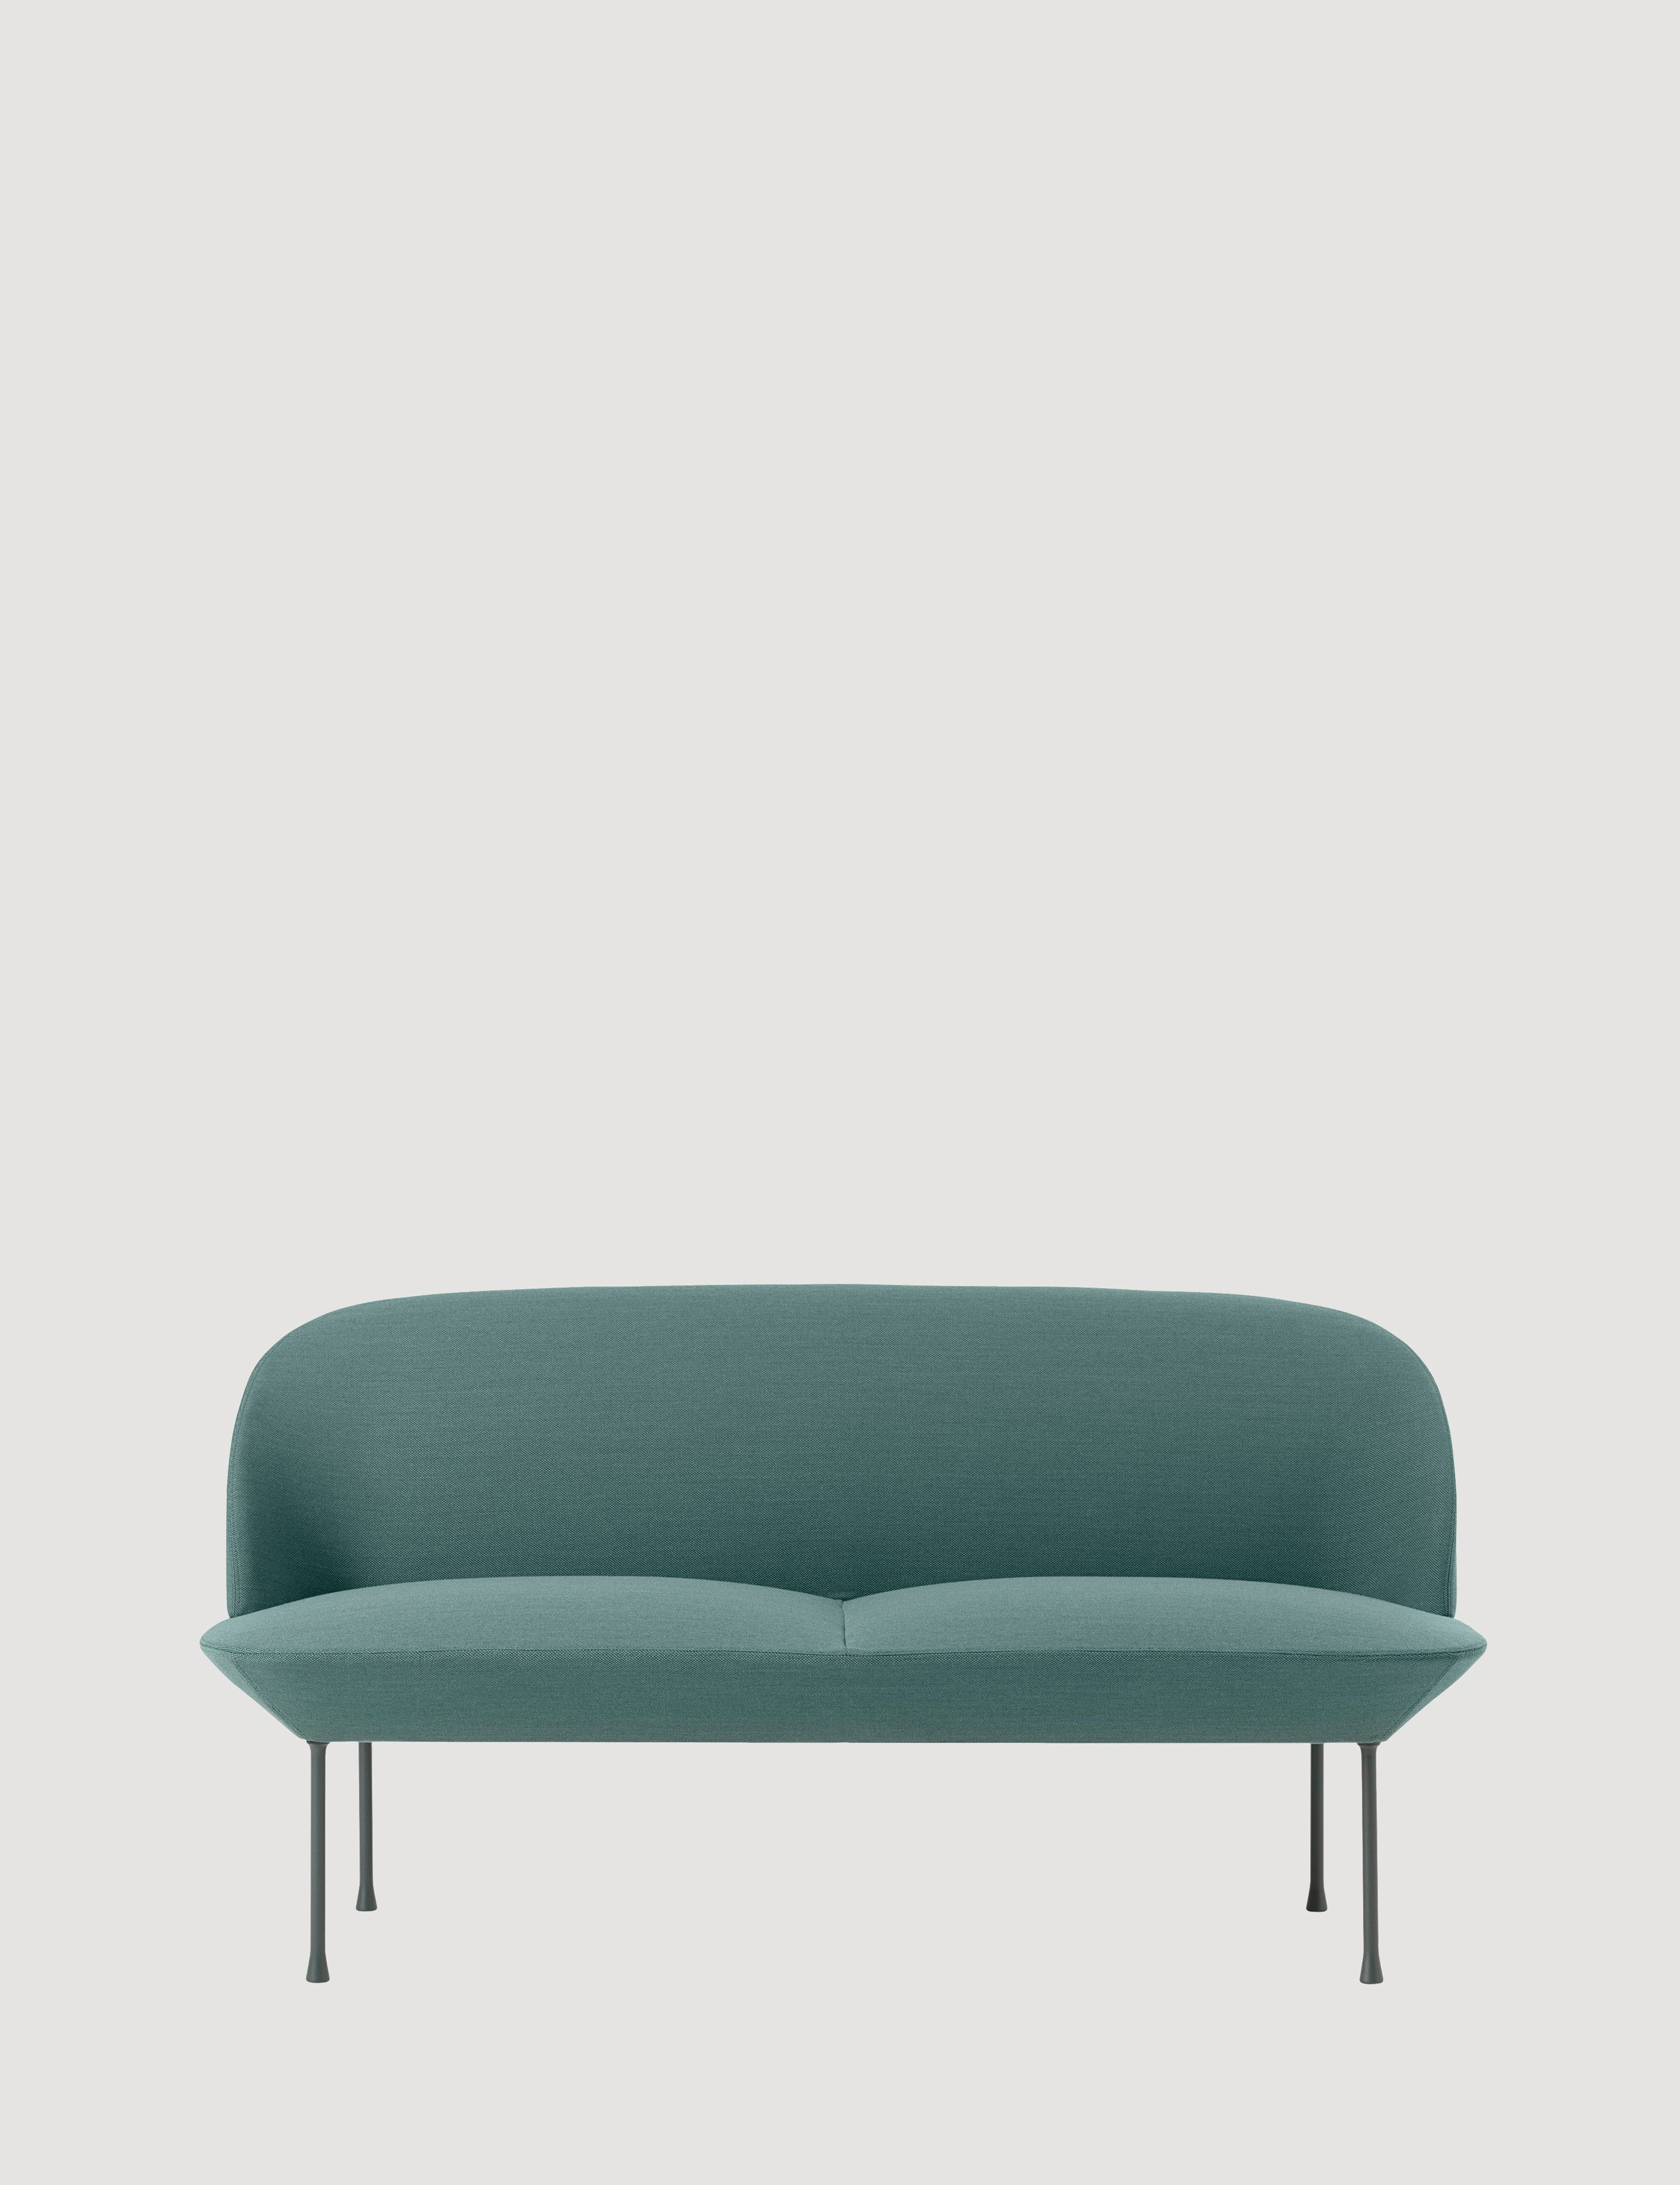 The OSLO SOFA Series Combines Light And Modern Design With An Ergonomically  Focused Comfortable Lounging Experience. Designed By Anderssen U0026 Voll, ...